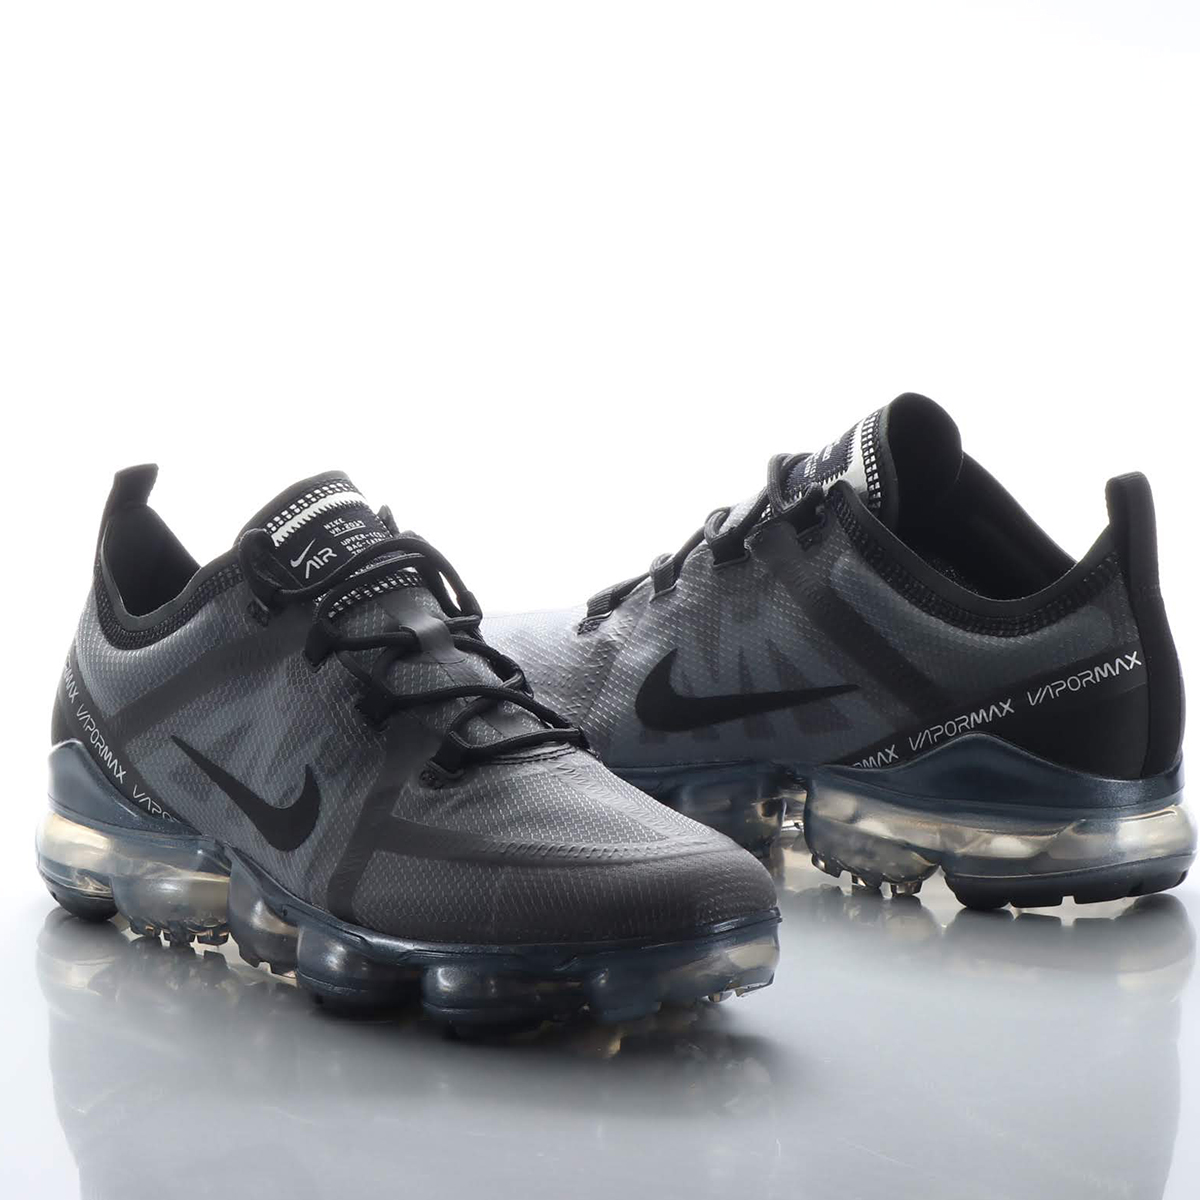 2f06dcd8ed Woo with advanced elasticity skills is material and the クッショニング structure Nike  air vapor max 2019 men's running shoes thought out wrap up a foot, ...